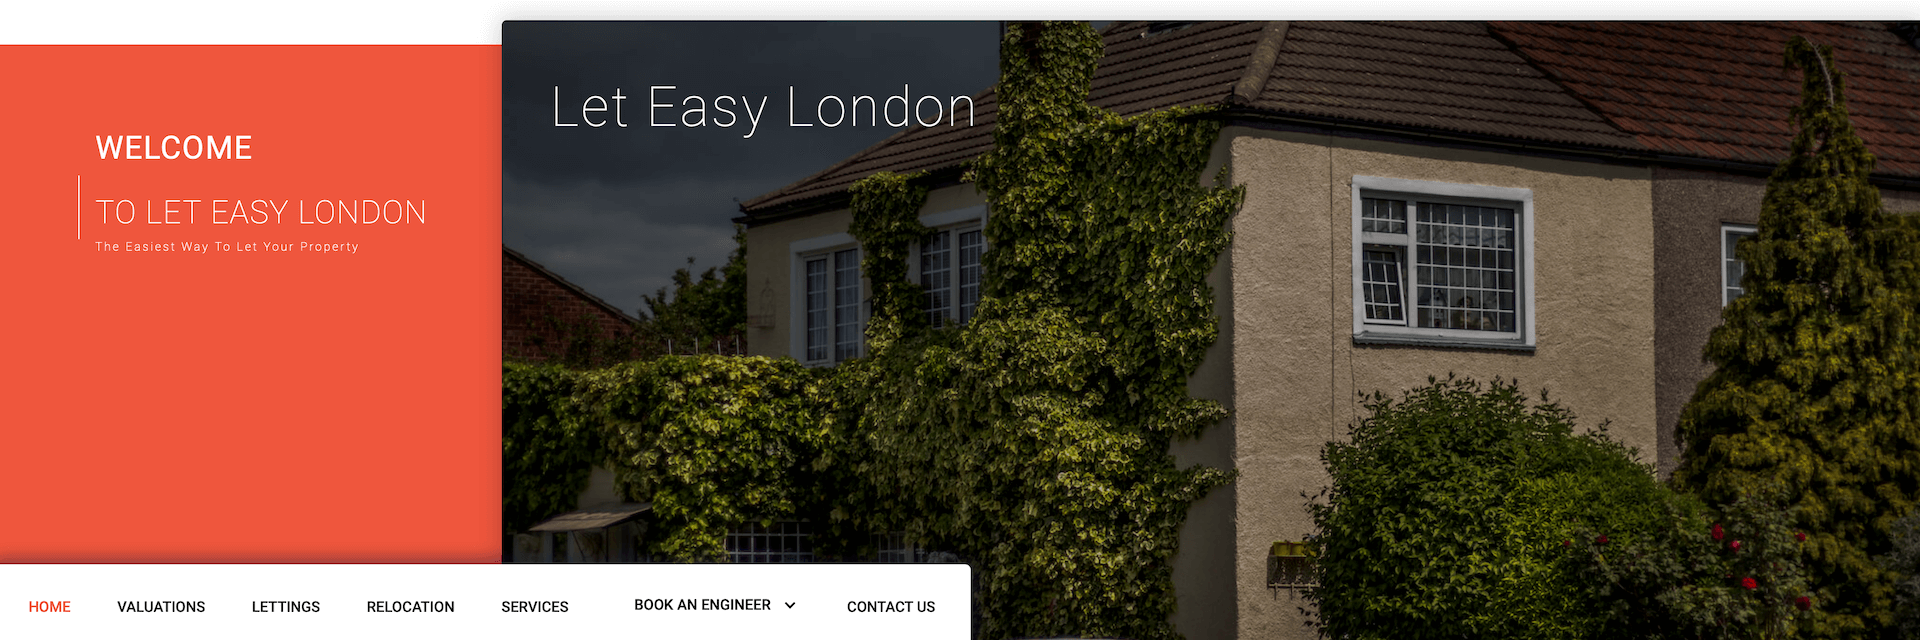 Let Easy London